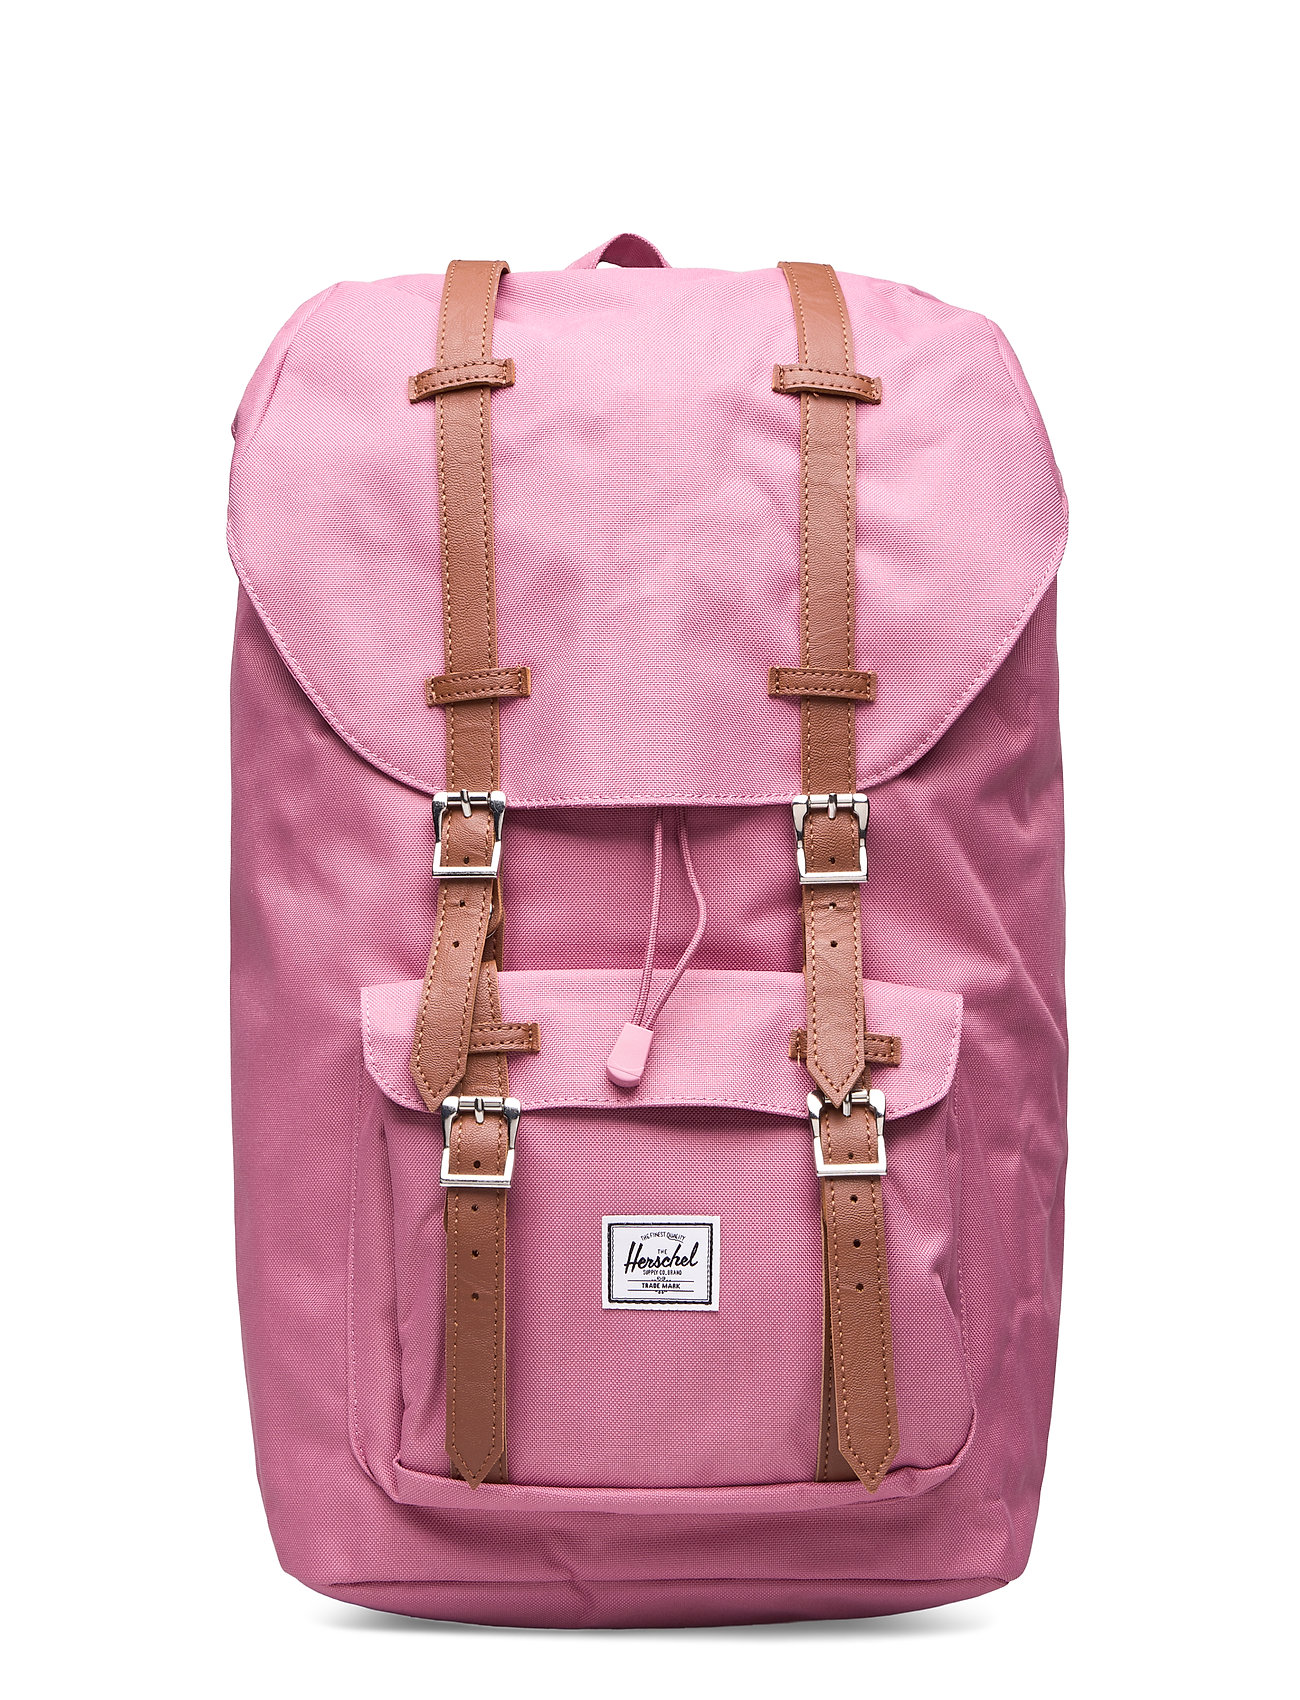 HERSCHEL Tasche | Herschel Little America-Heather Rose Bags Backpacks Casual Backpacks Pink HERSCHEL